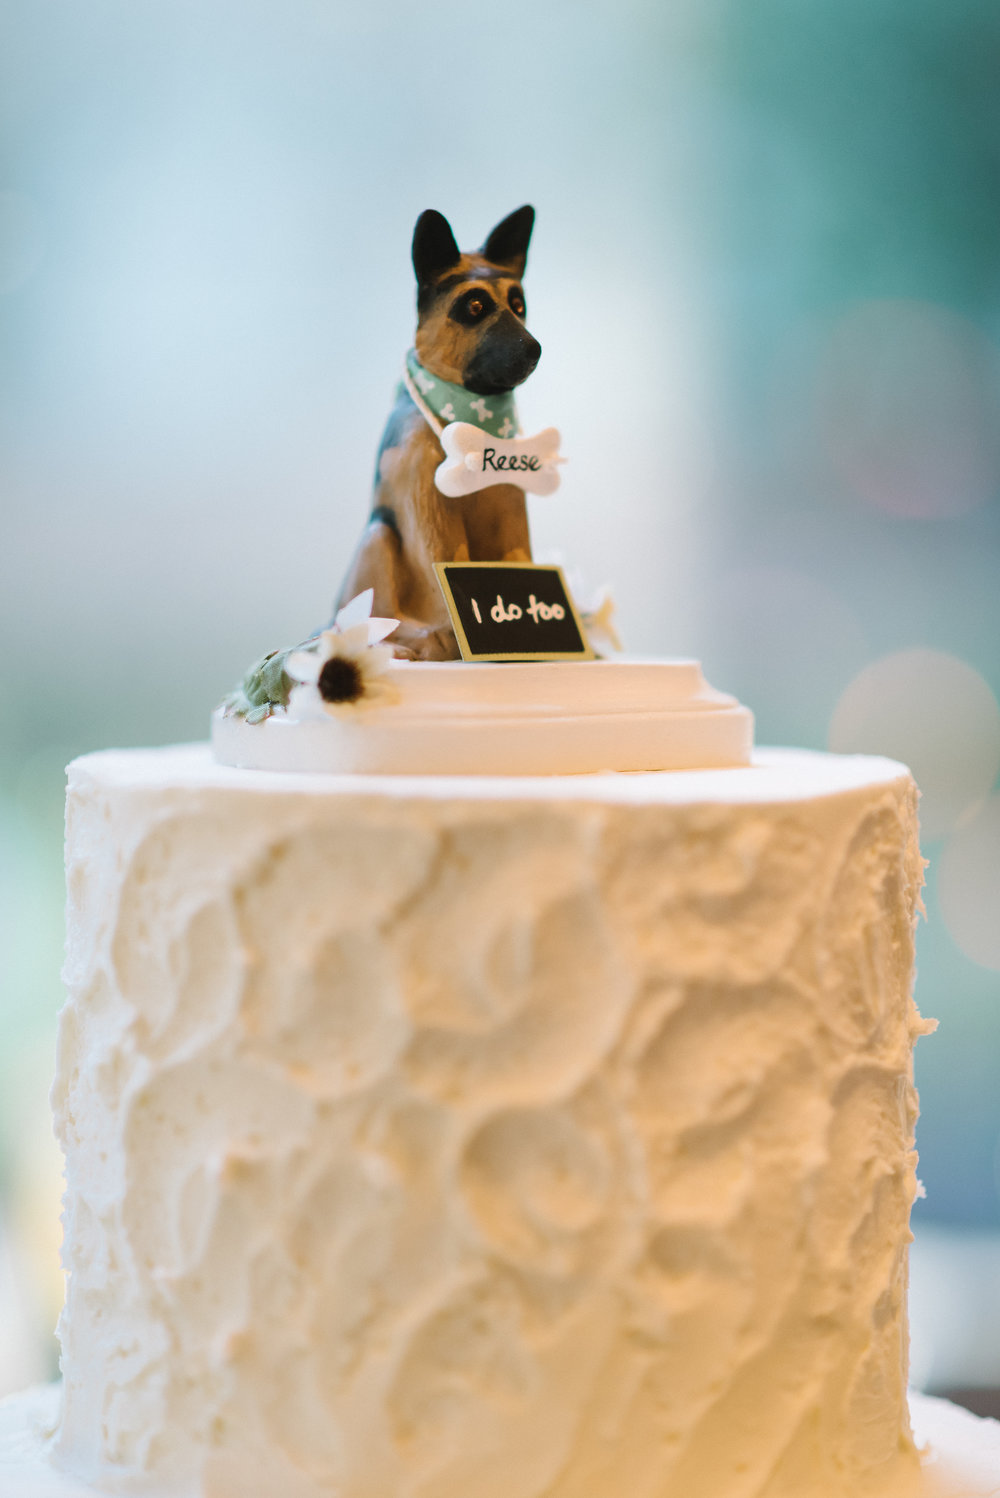 19 houston luxury wedding planning cohen house dog cake topper.JPG